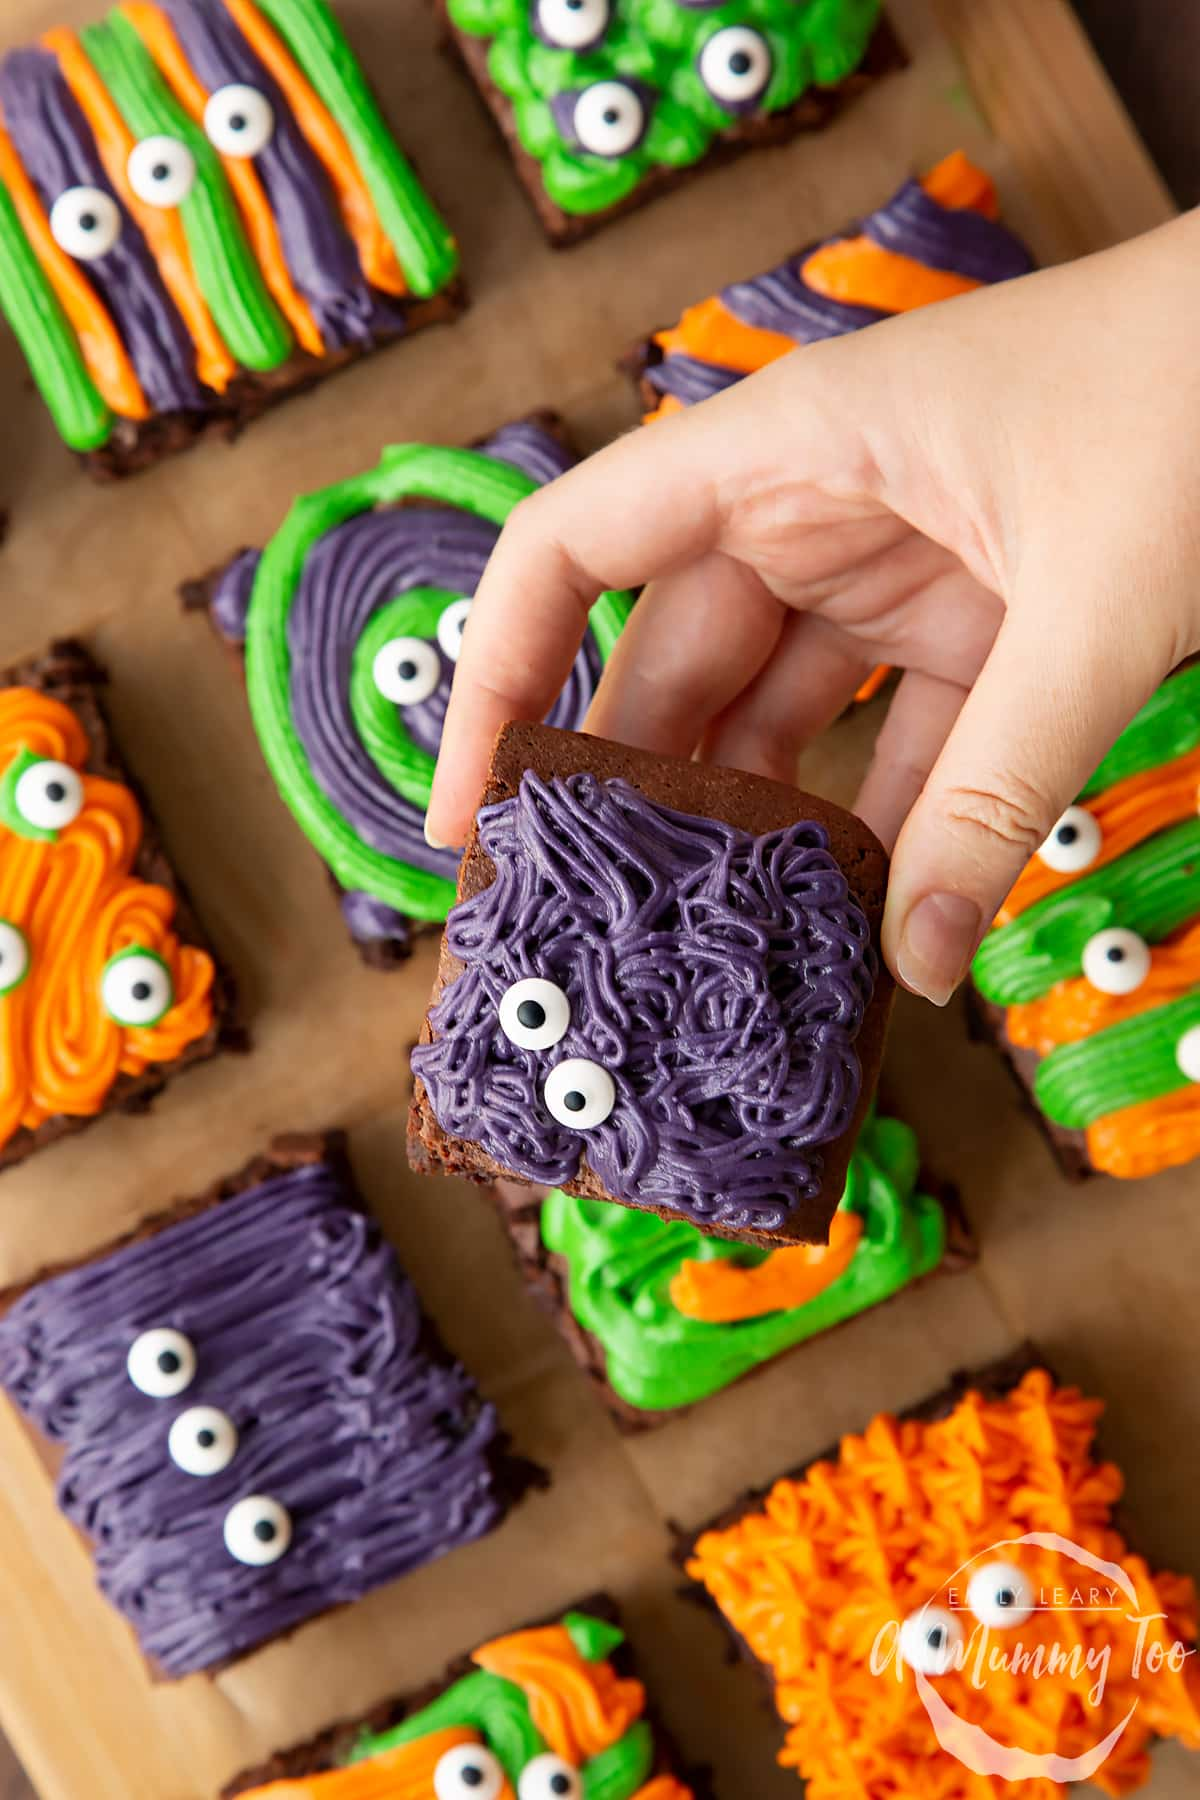 Halloween brownies arranged on a board lined with baking paper. A hand holds a purple frosted brownie with candy eyes.